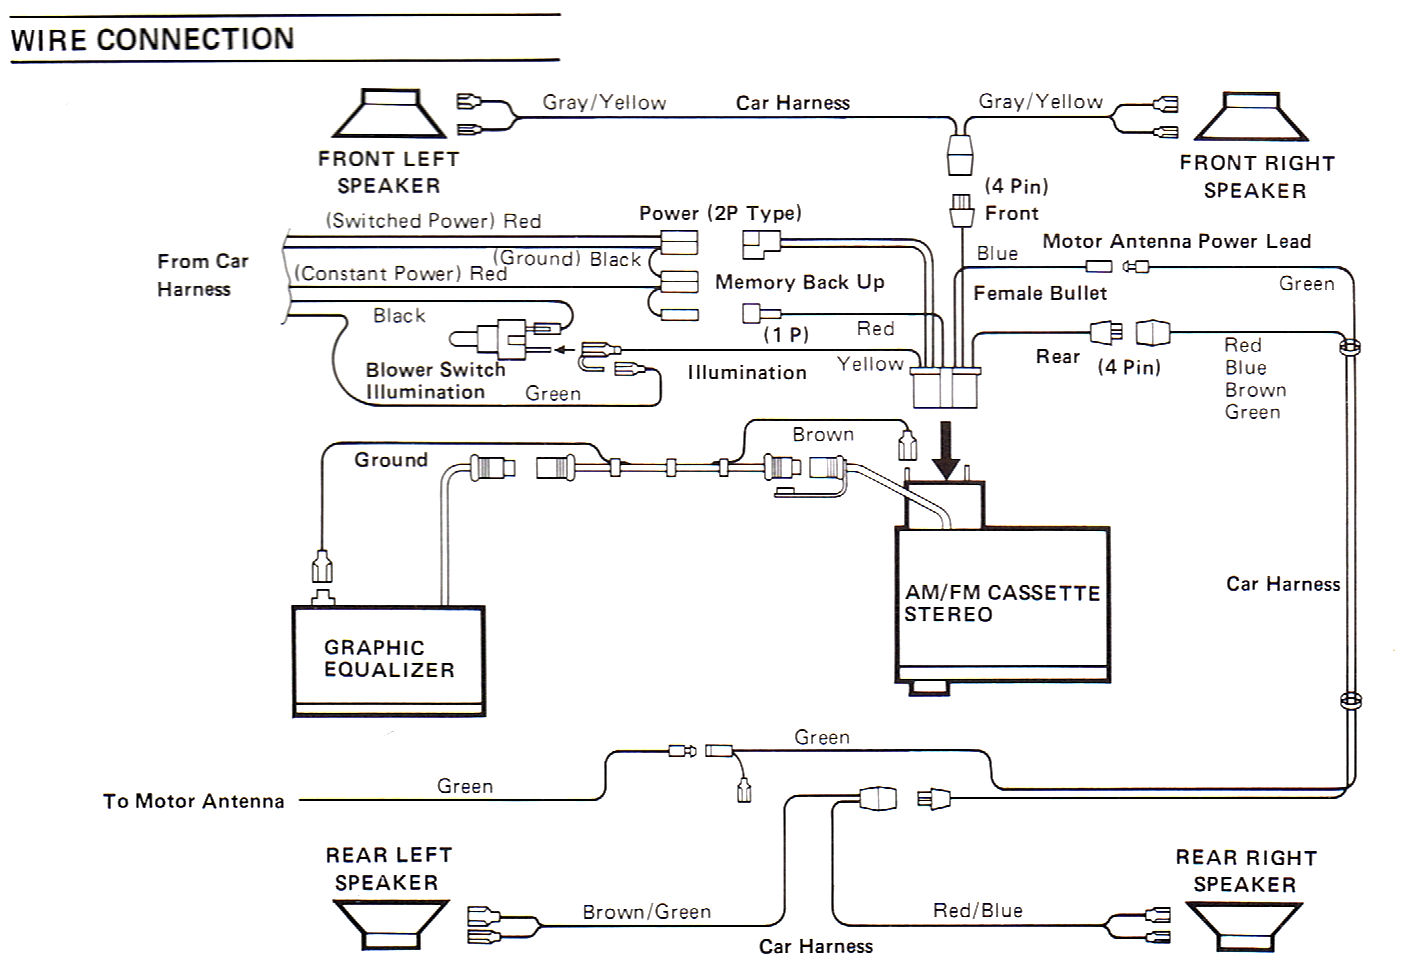 clarion car stereo wiring diagram process template powerpoint equalizer 32